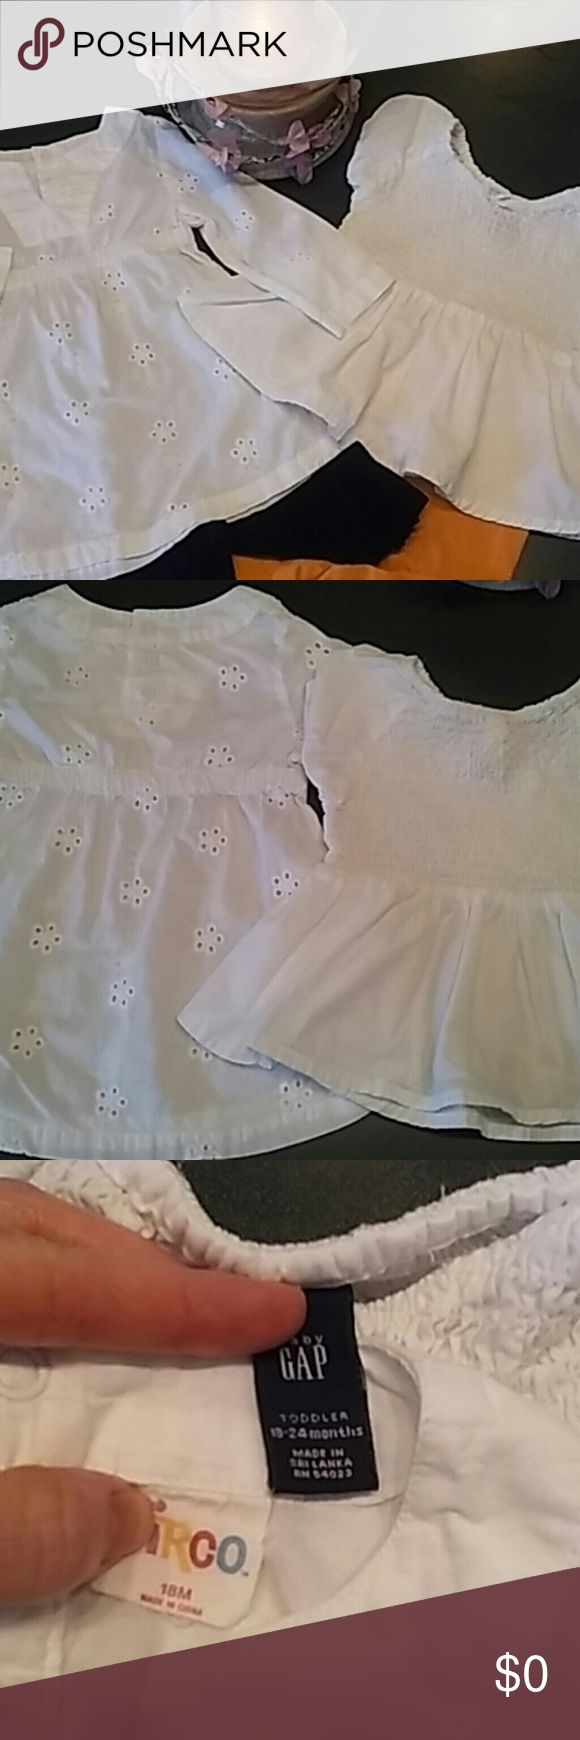 Girl's 4 pc. Cotton tops w/ Capri Leggings 18 mos Great condition! No stains or tears.  Snaps and elastic in great condition.  Tops are 100% white cotton poplin.  Capri Leggings are 95% cotton and 5% spandex.  Listing includes two coordinated outfits.  Circo Tunic empire waist eyelet top and Koala Kids Black Capri Leggings with bottom ruffles are 18 Months.  Baby Gap Short sleeve gathered top and Old Navy soft orange Capri Leggings are 18-24 months. Baby gap Matching Sets